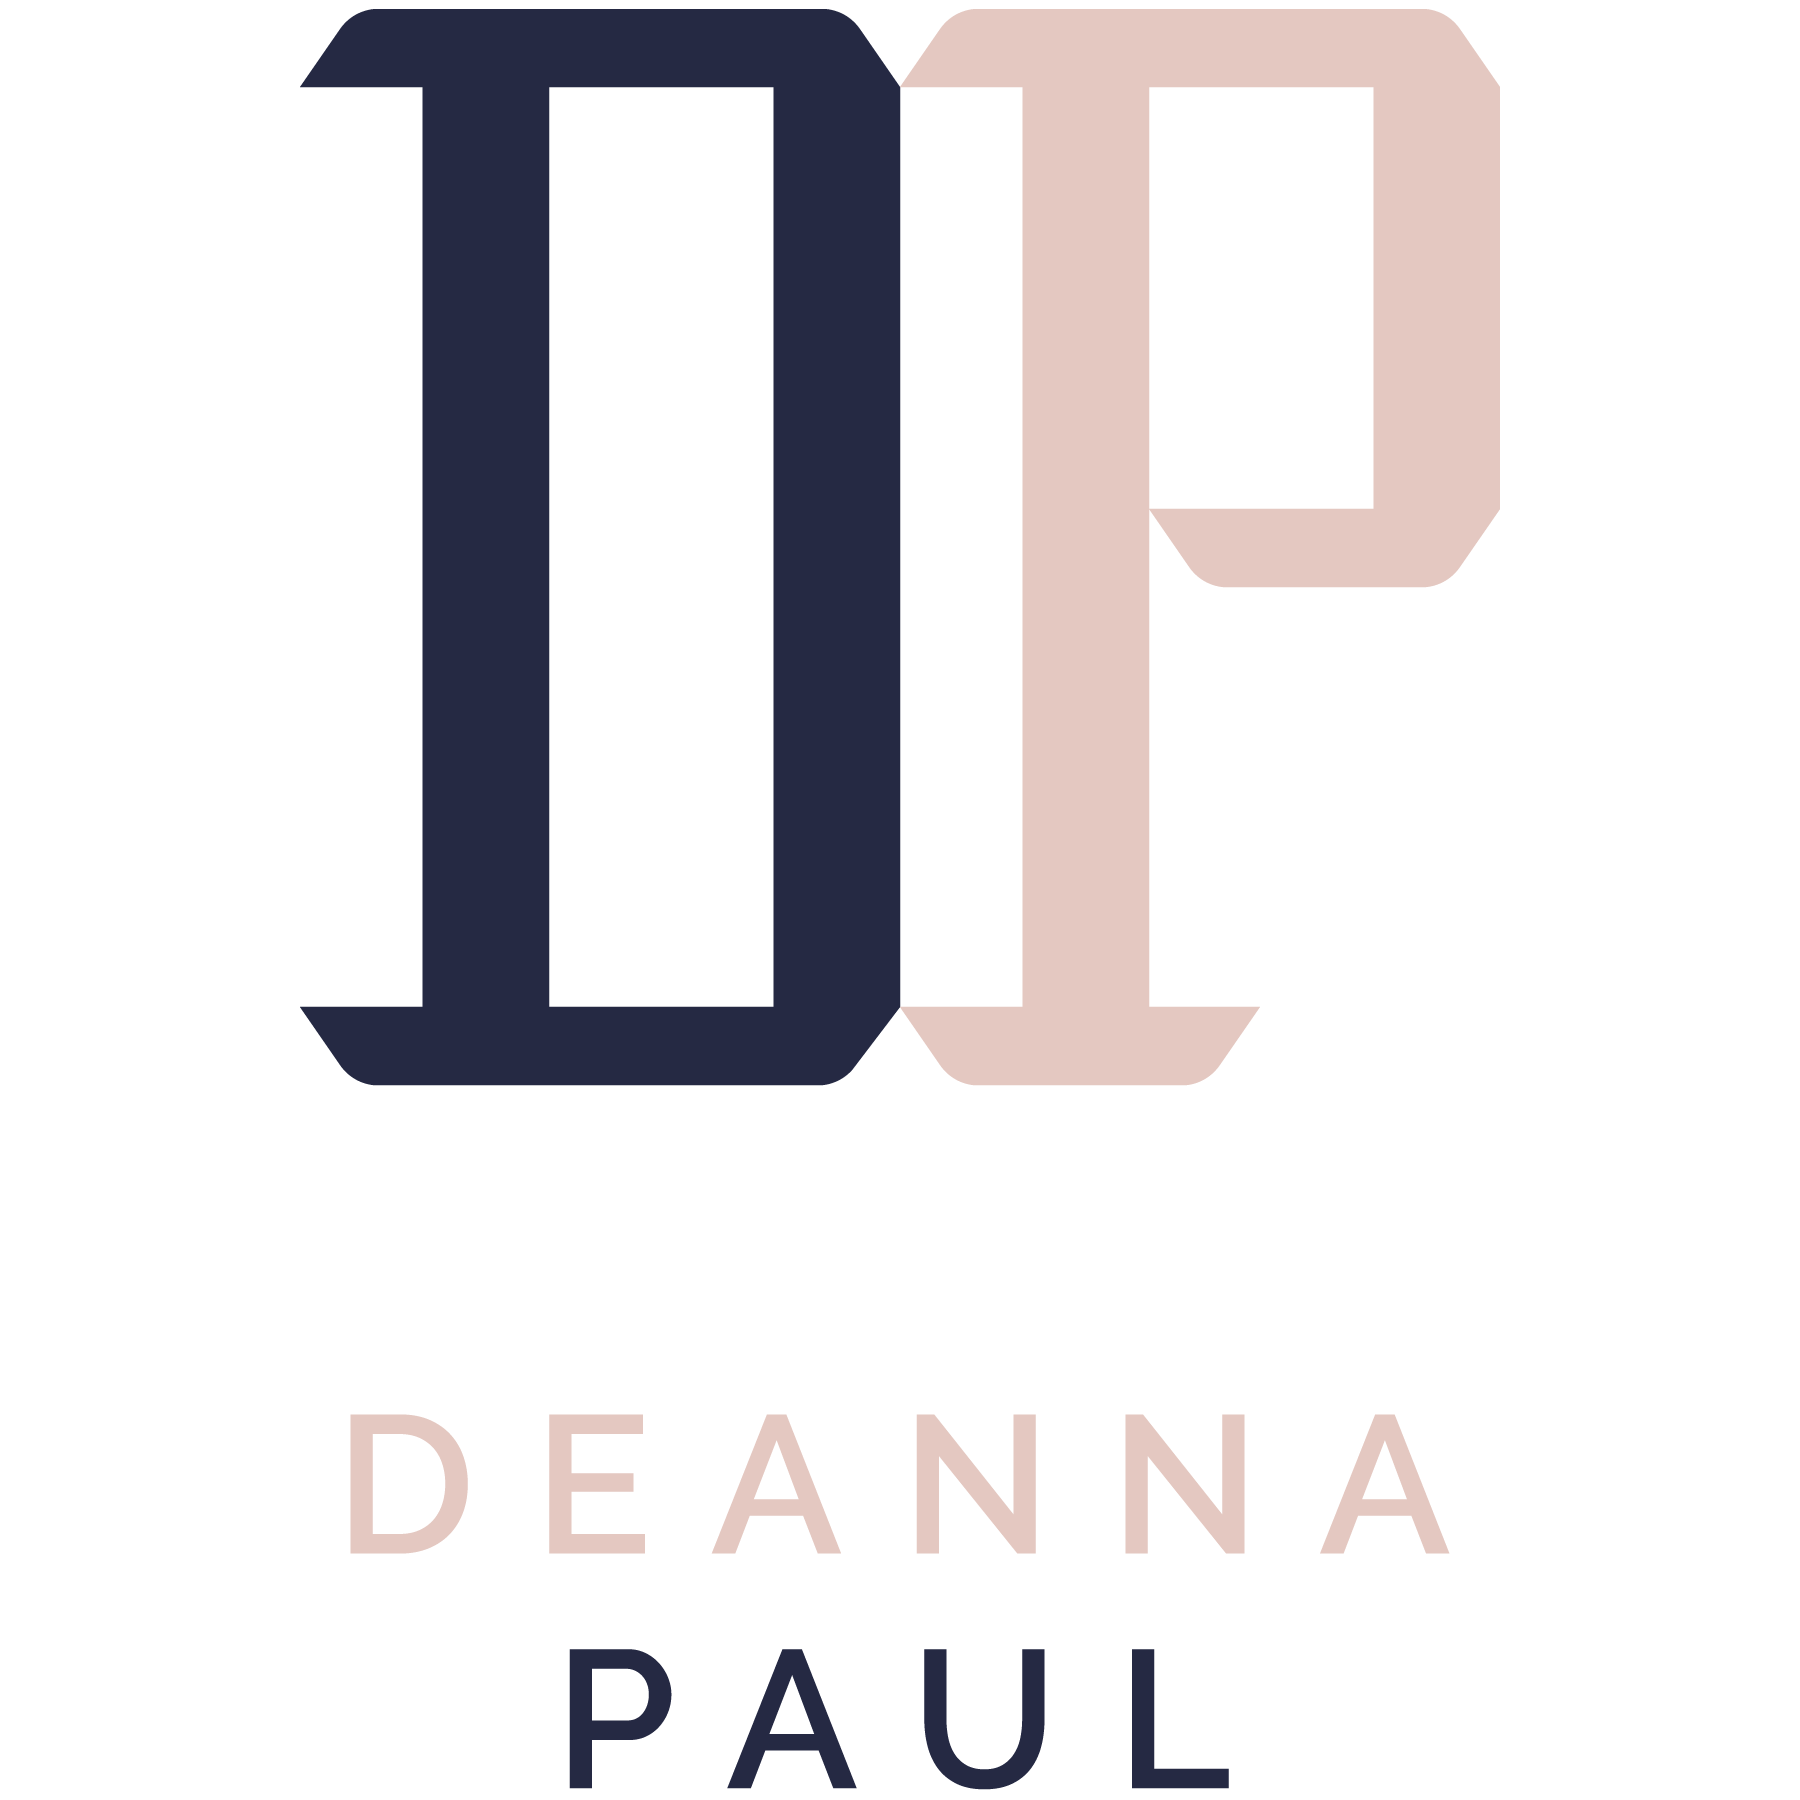 deanna-paul-personal-brand-02.png